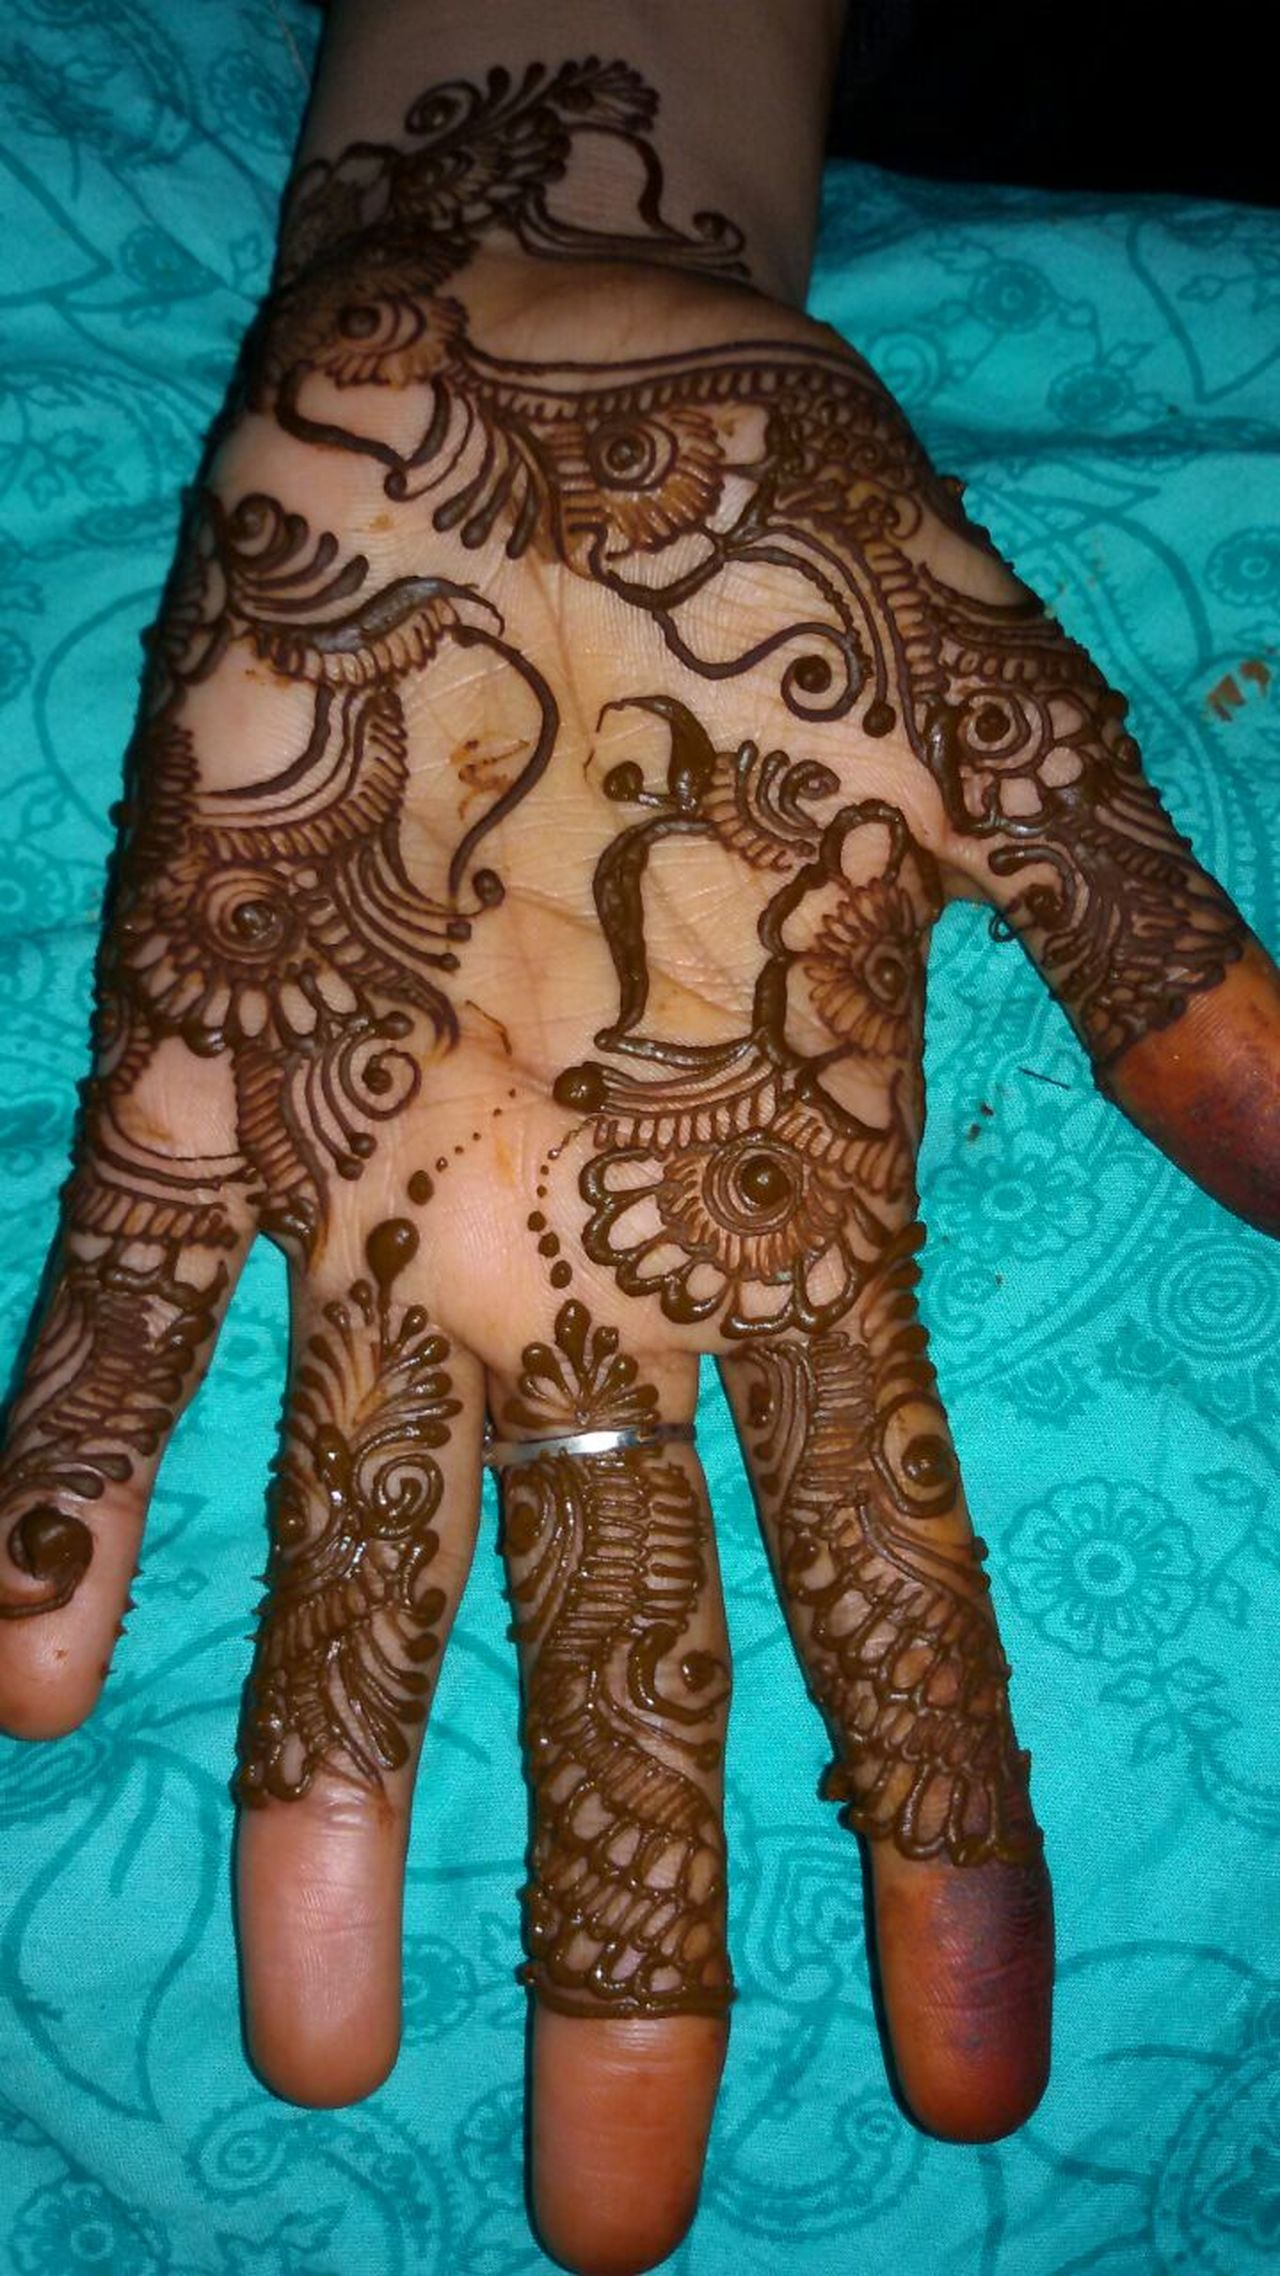 Henna Tattoo Henna Tattoo ❤ Design Close-up Human Body Part Human Hand Art And Craft Creativity Art High Angle View Parasngupta_photography